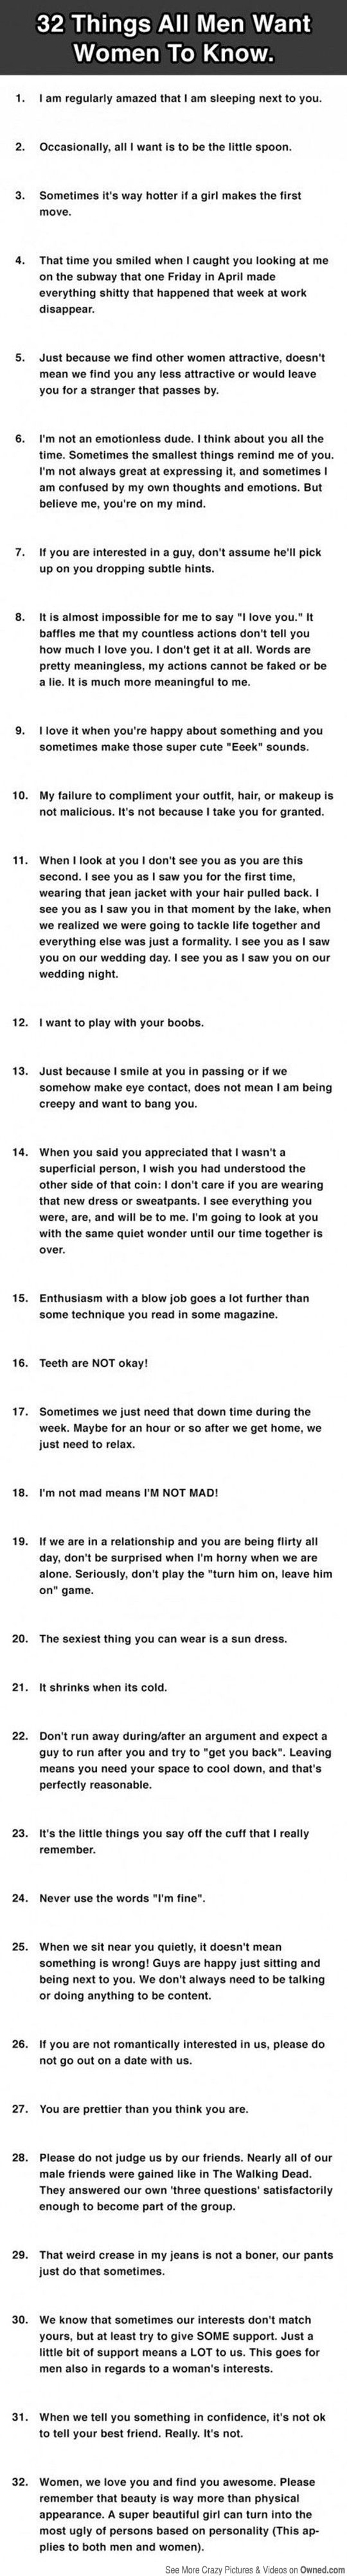 32 Things all Men want women to know...